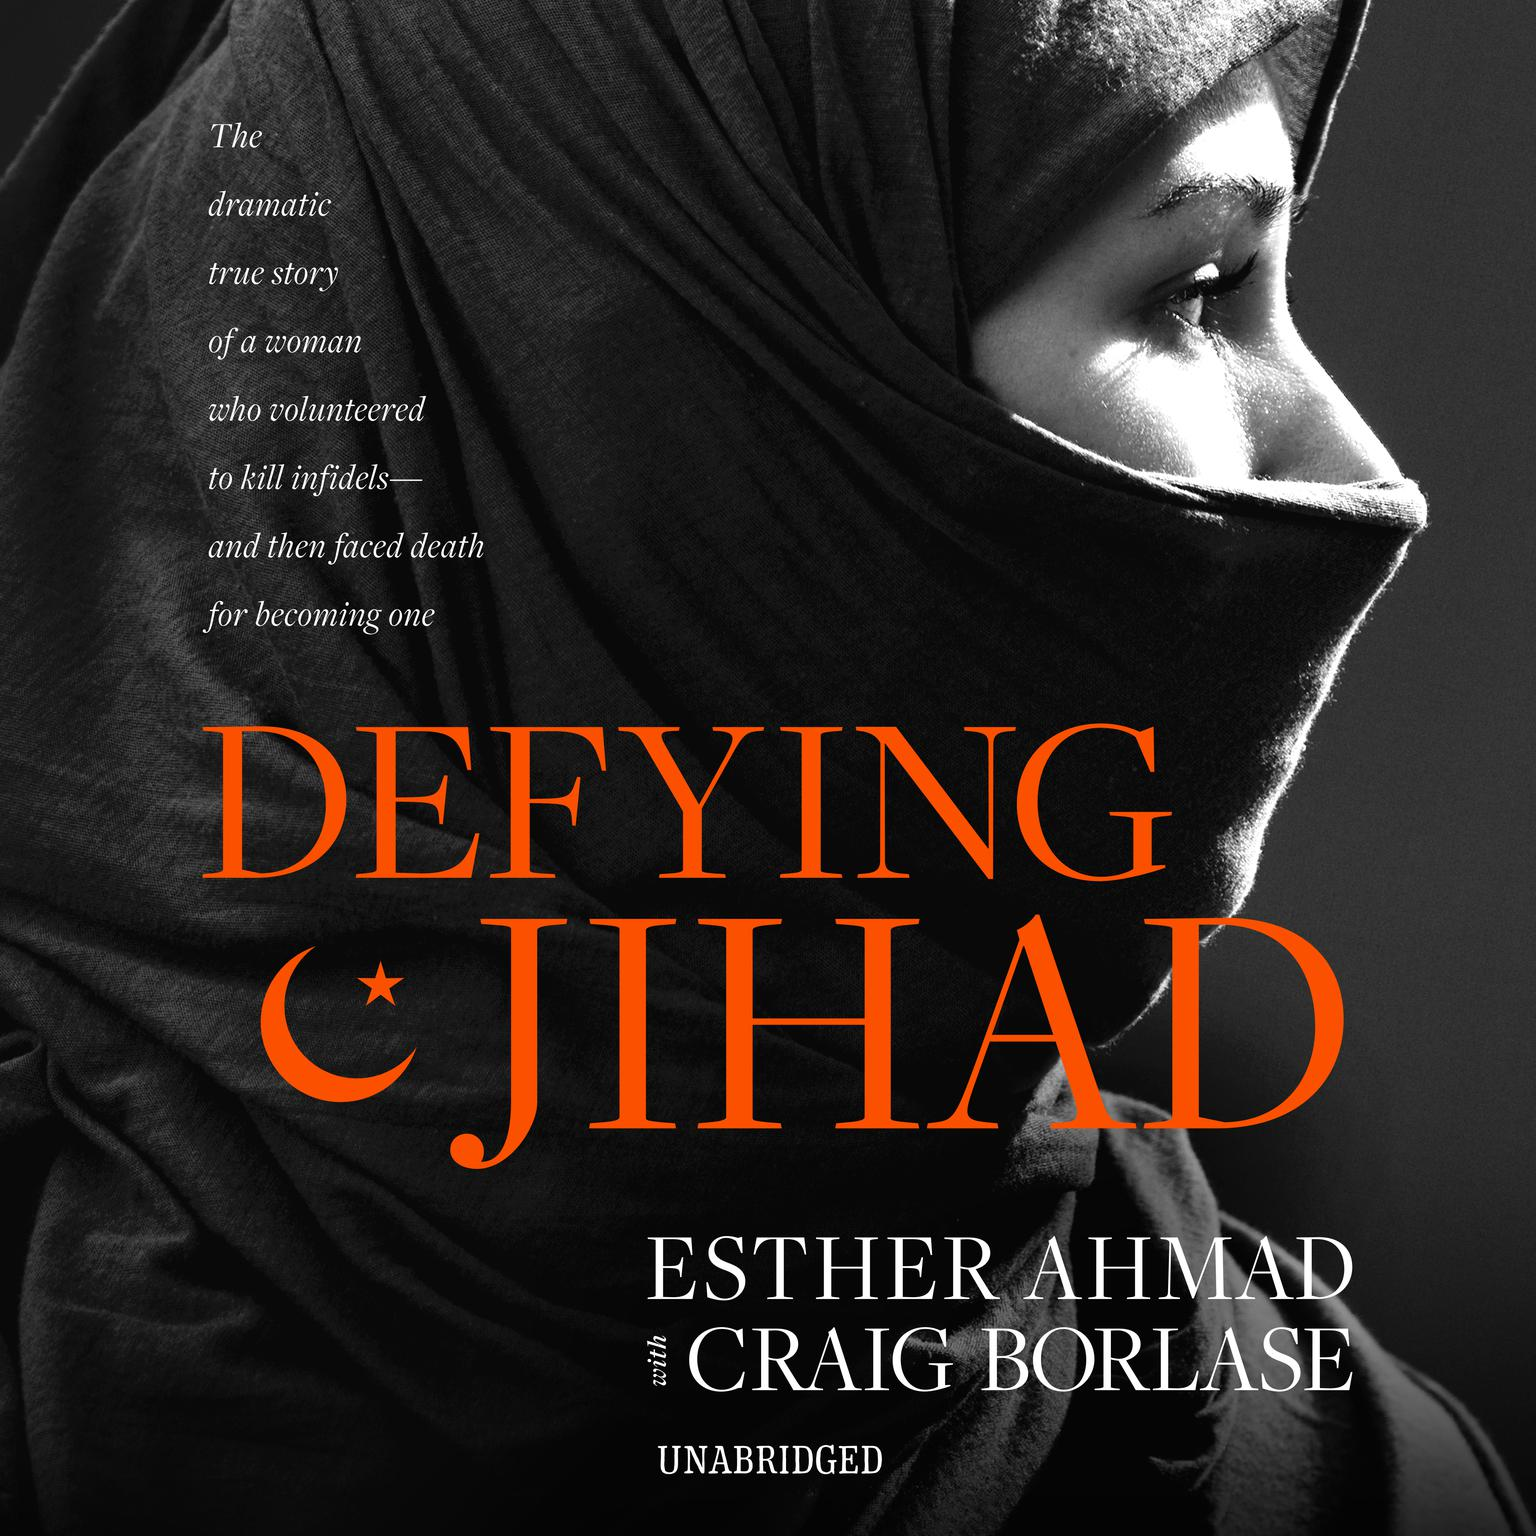 Printable Defying Jihad: The Dramatic True Story of a Woman Who Volunteered to Kill Infidels—and Then Faced Death for Becoming One Audiobook Cover Art